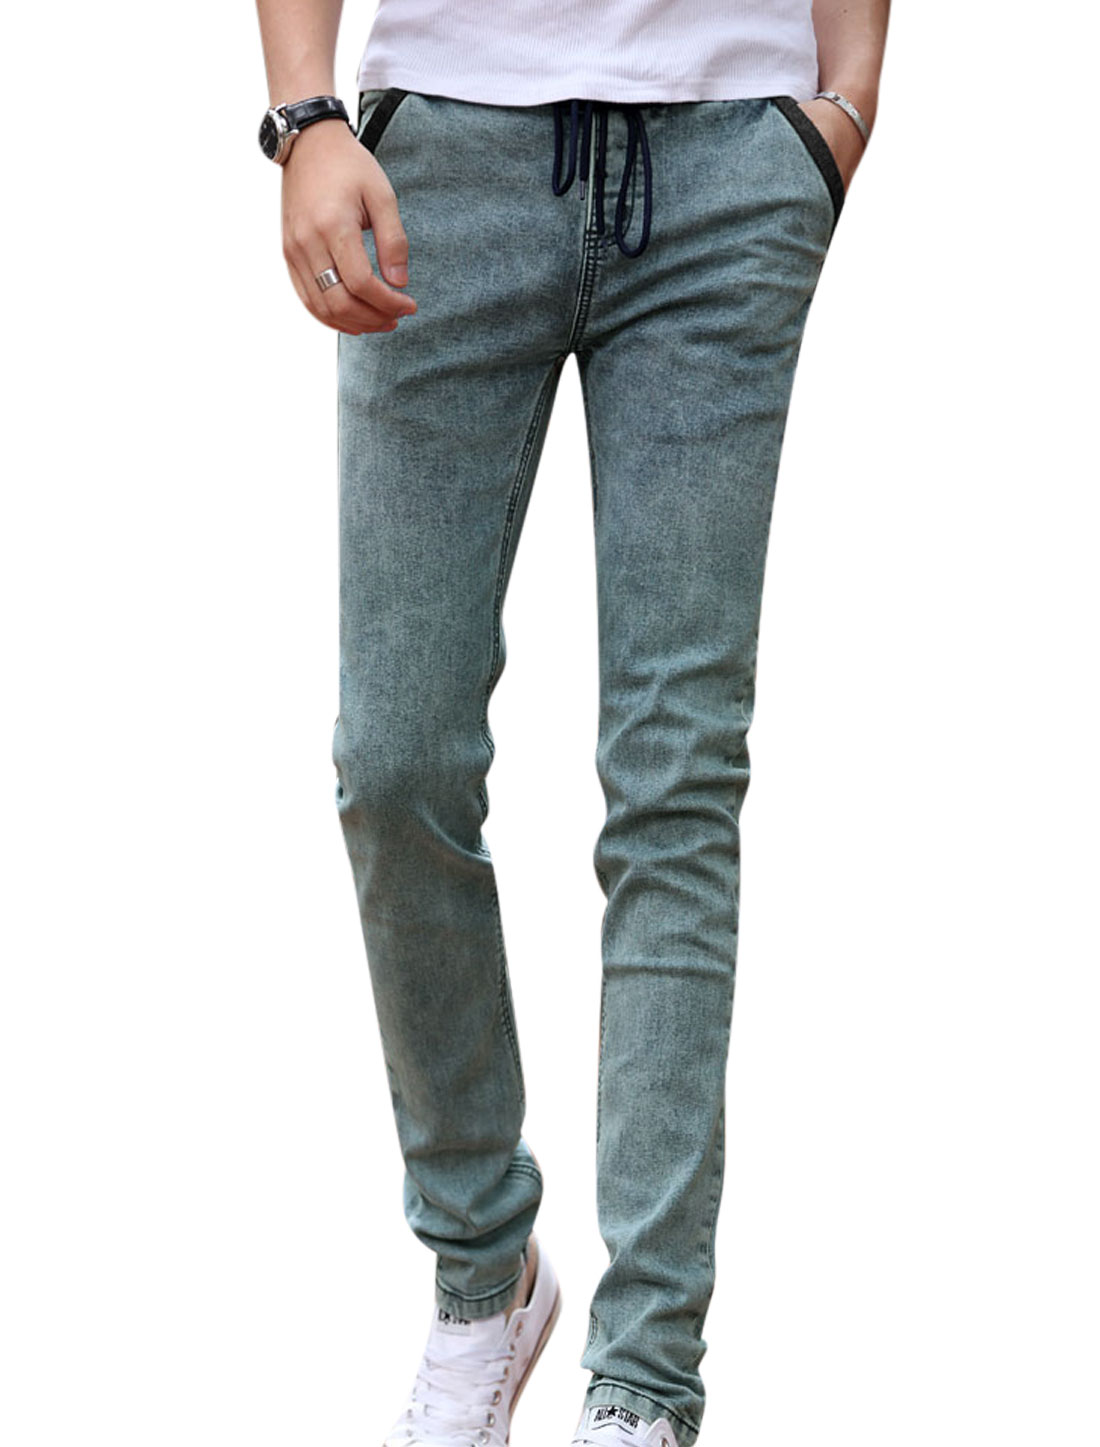 Men Mid Rise Hip Pockets Decor Drawstring Casual Jeans Blue W32